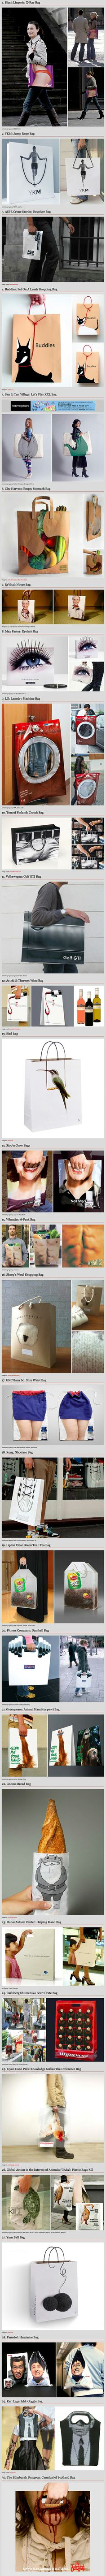 When selling a product, its design is one of the most important aspects of its marketability. However, just as important, if not more so, is making sure that your product and your consumers' shopping experience is memorable – and one excellent way to do this is with brilliantly designed shopping bags like these.